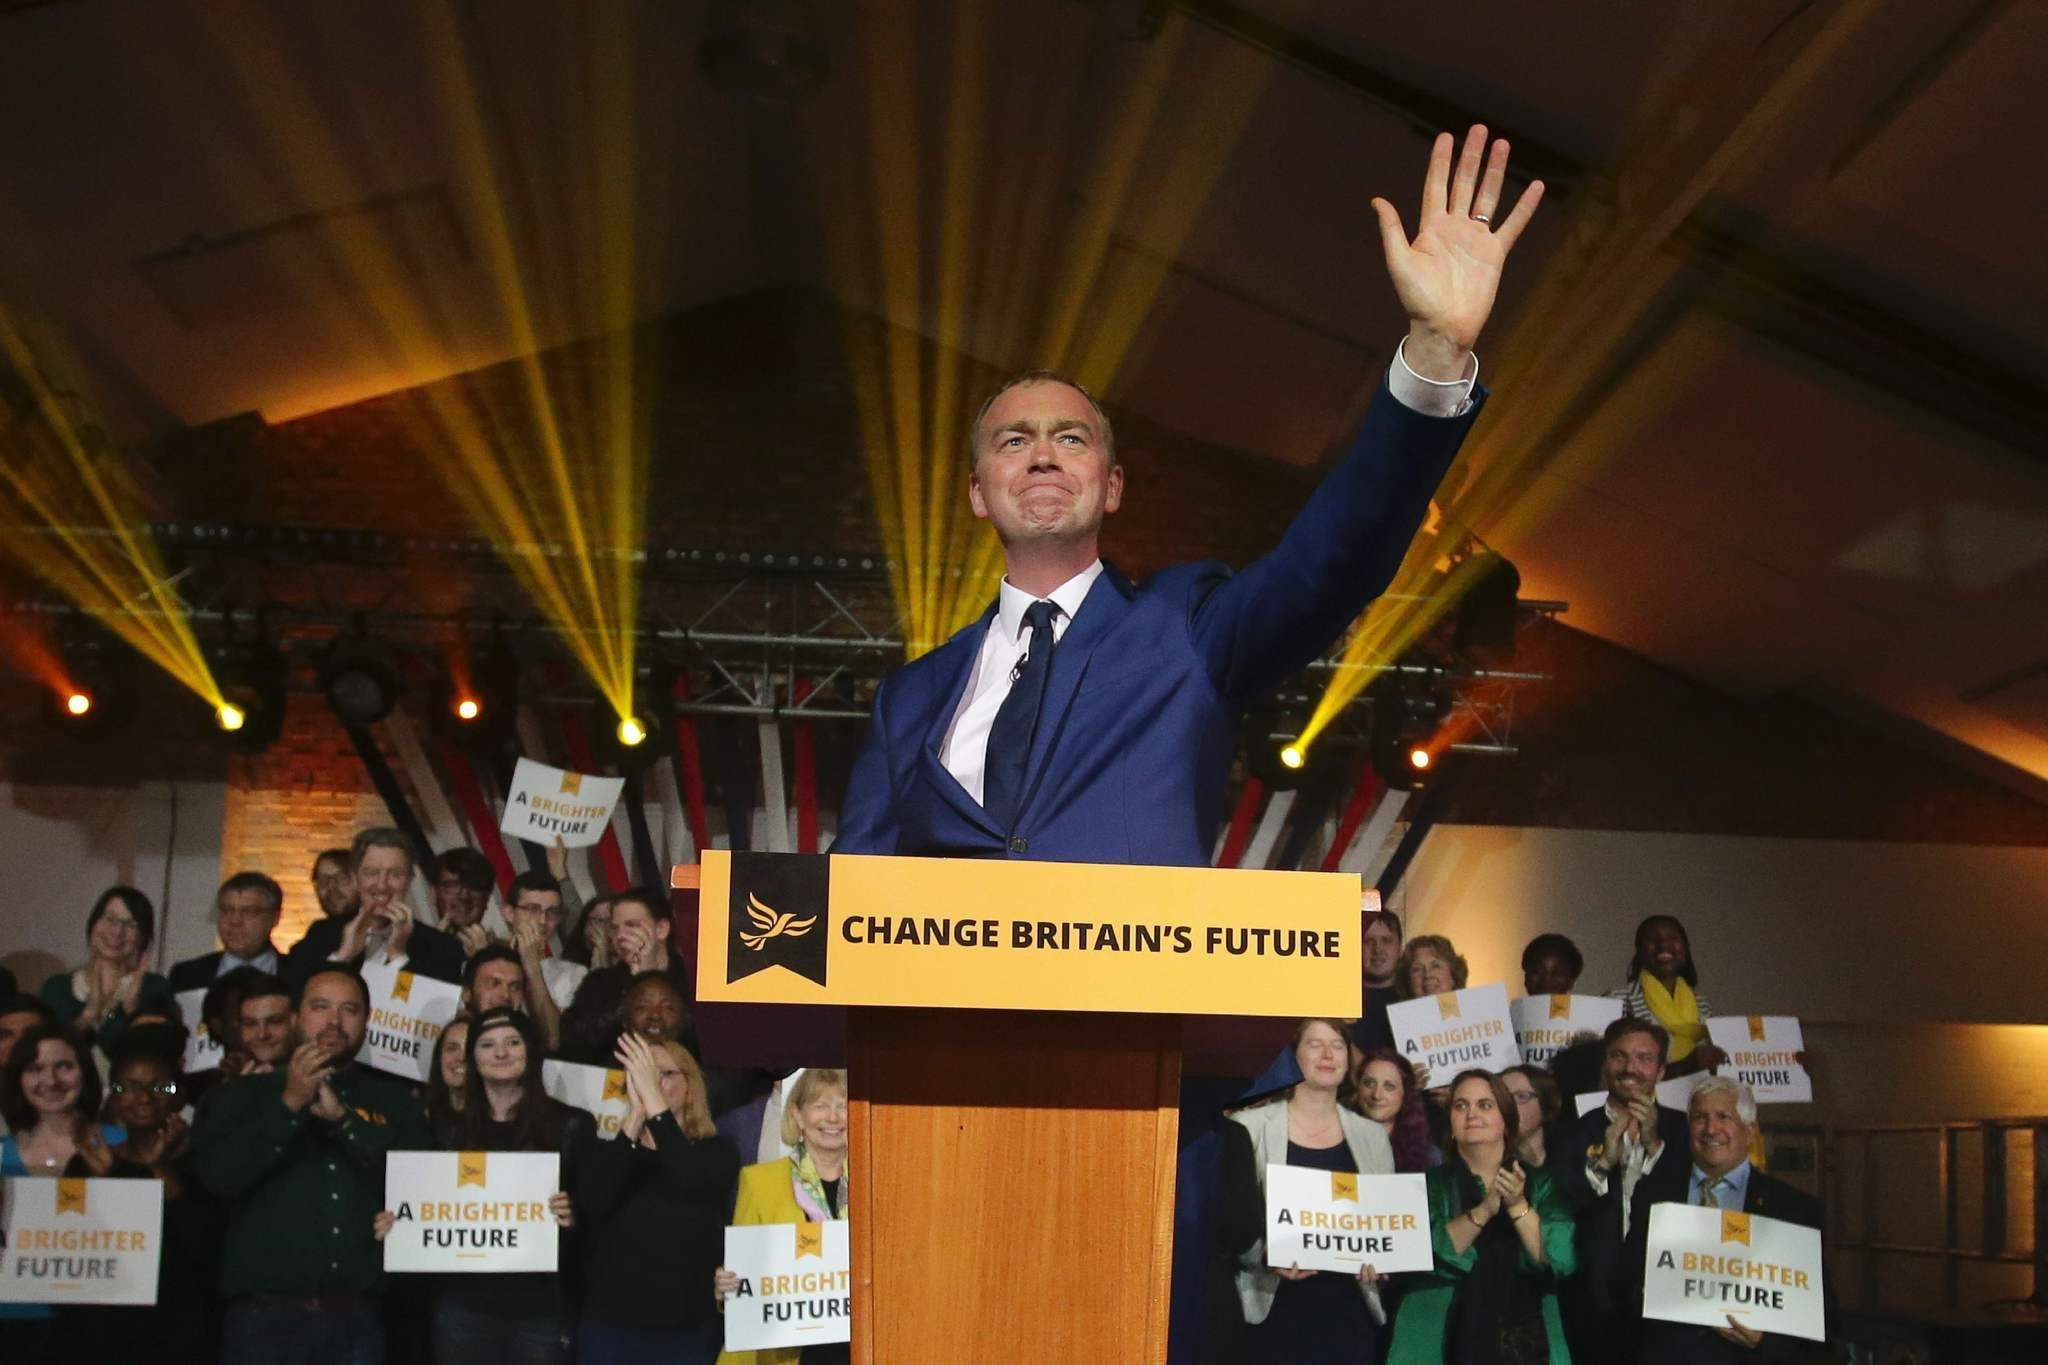 Liberal Democrats leader Tim Farron gestures as he speaks at an event to launch the party's general election manifesto in London on May 17, 2017. (AFP Photo)